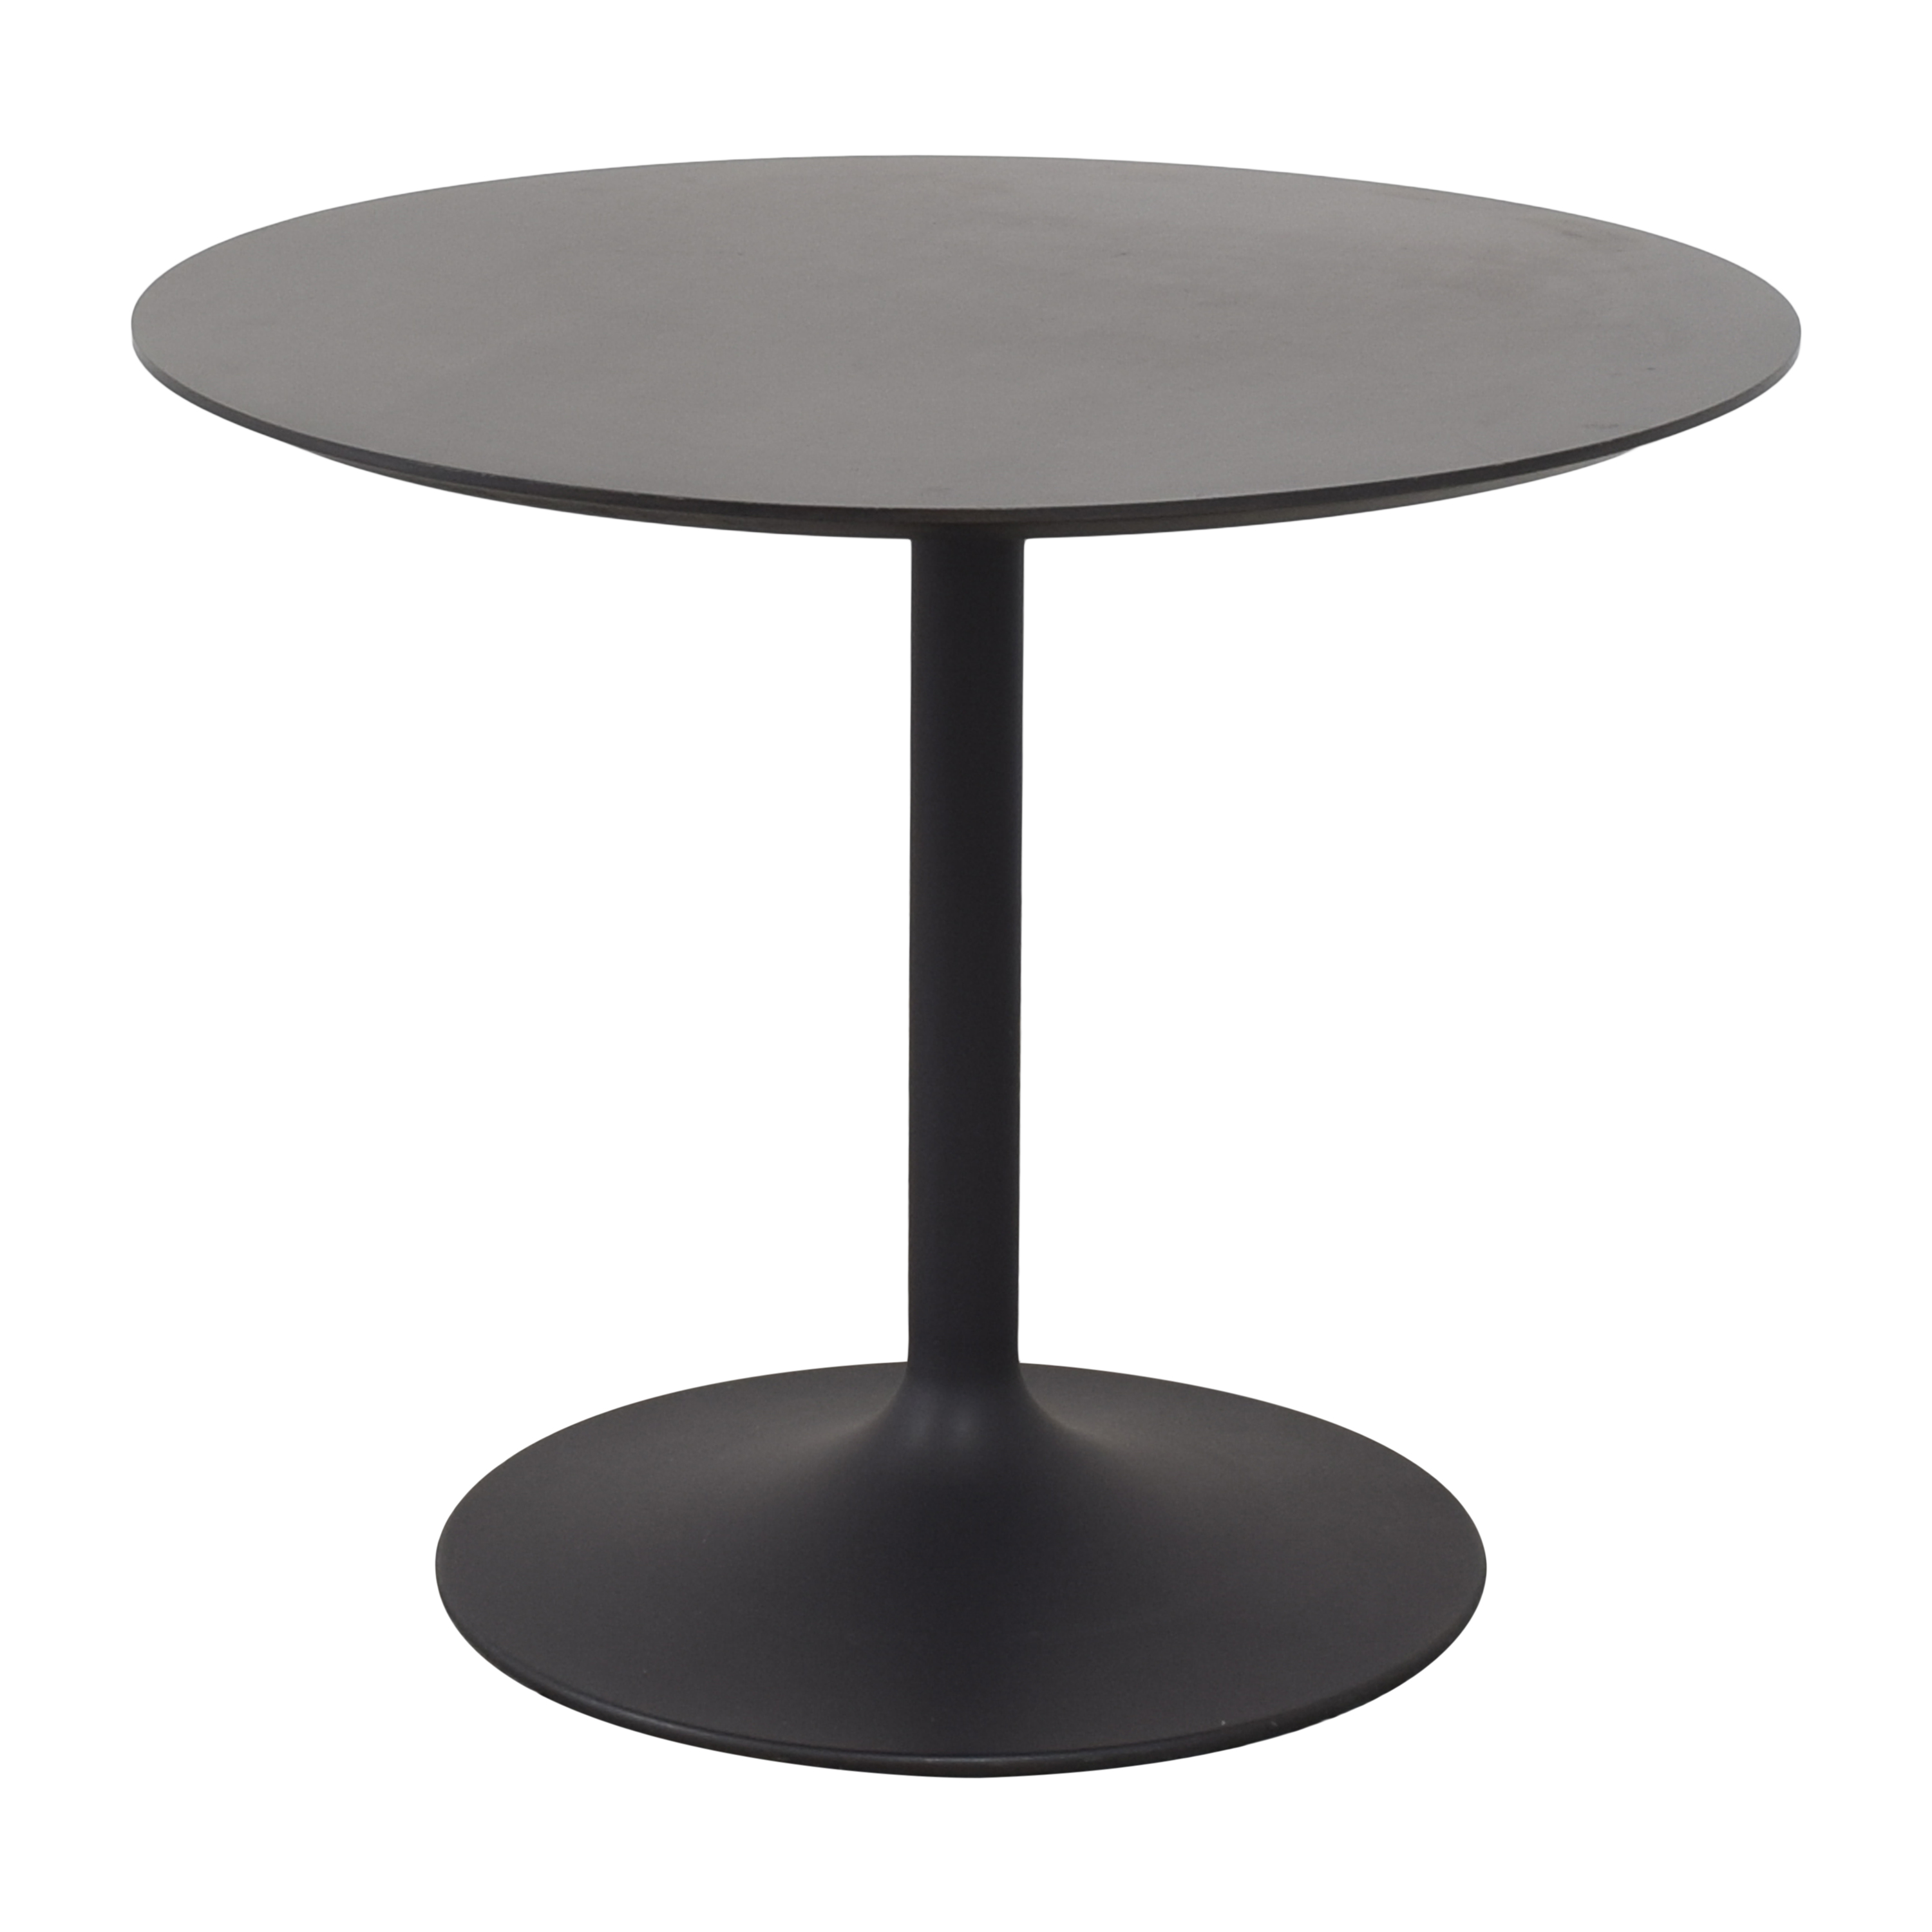 buy Room & Board Aria Round Dining Table Room & Board